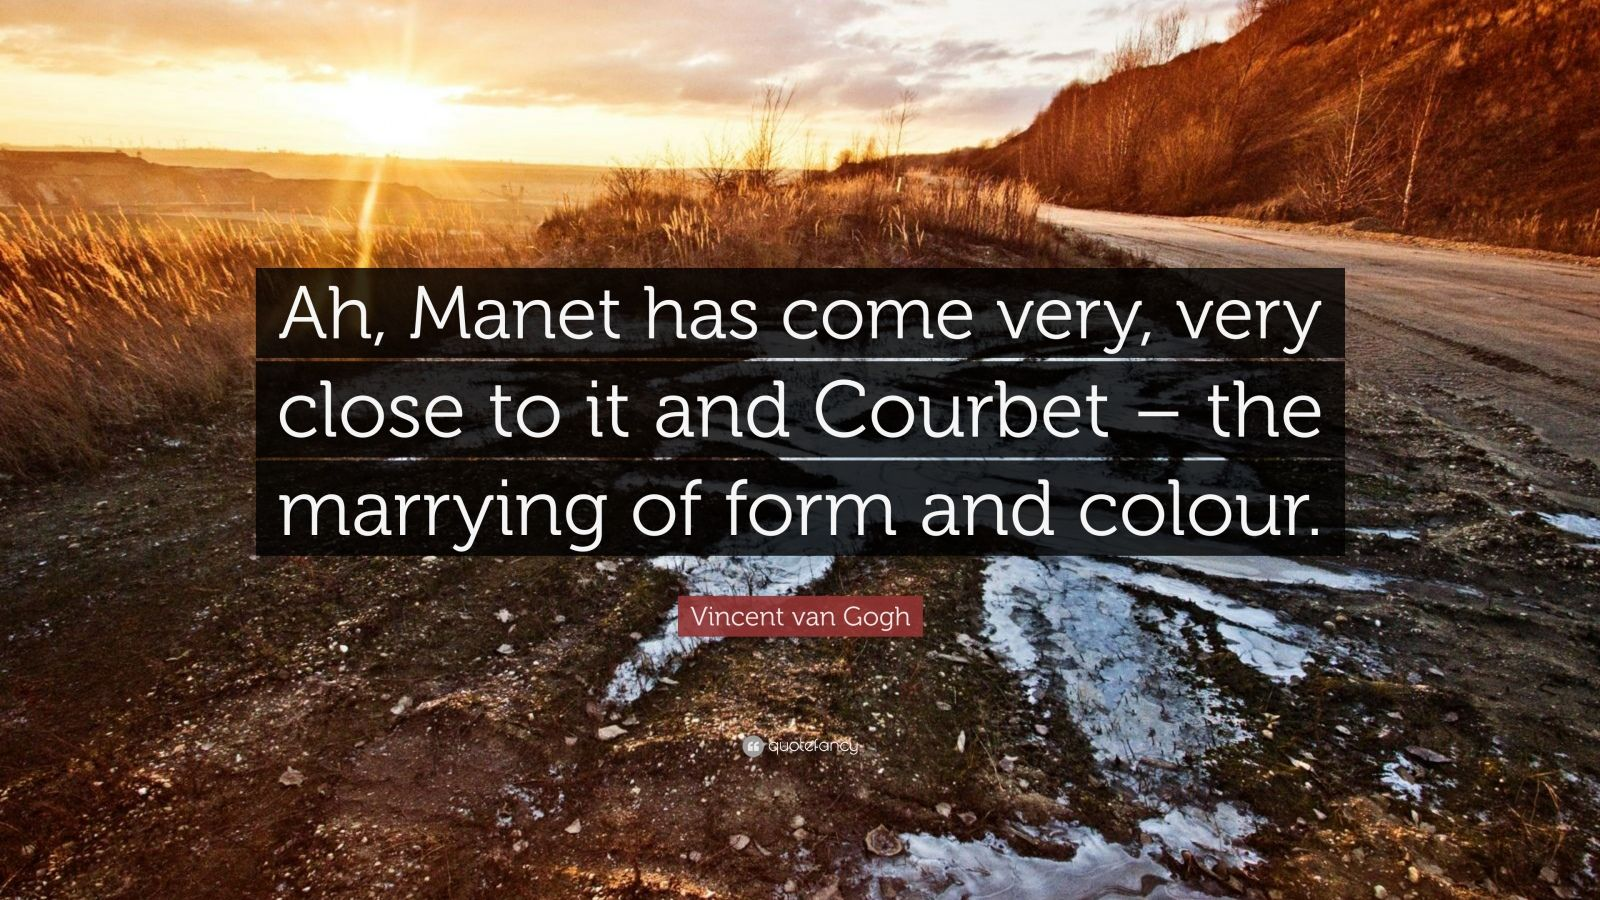 "Vincent van Gogh Quote: ""Ah, Manet has come very, very close to it and Courbet – the marrying of form and colour."""